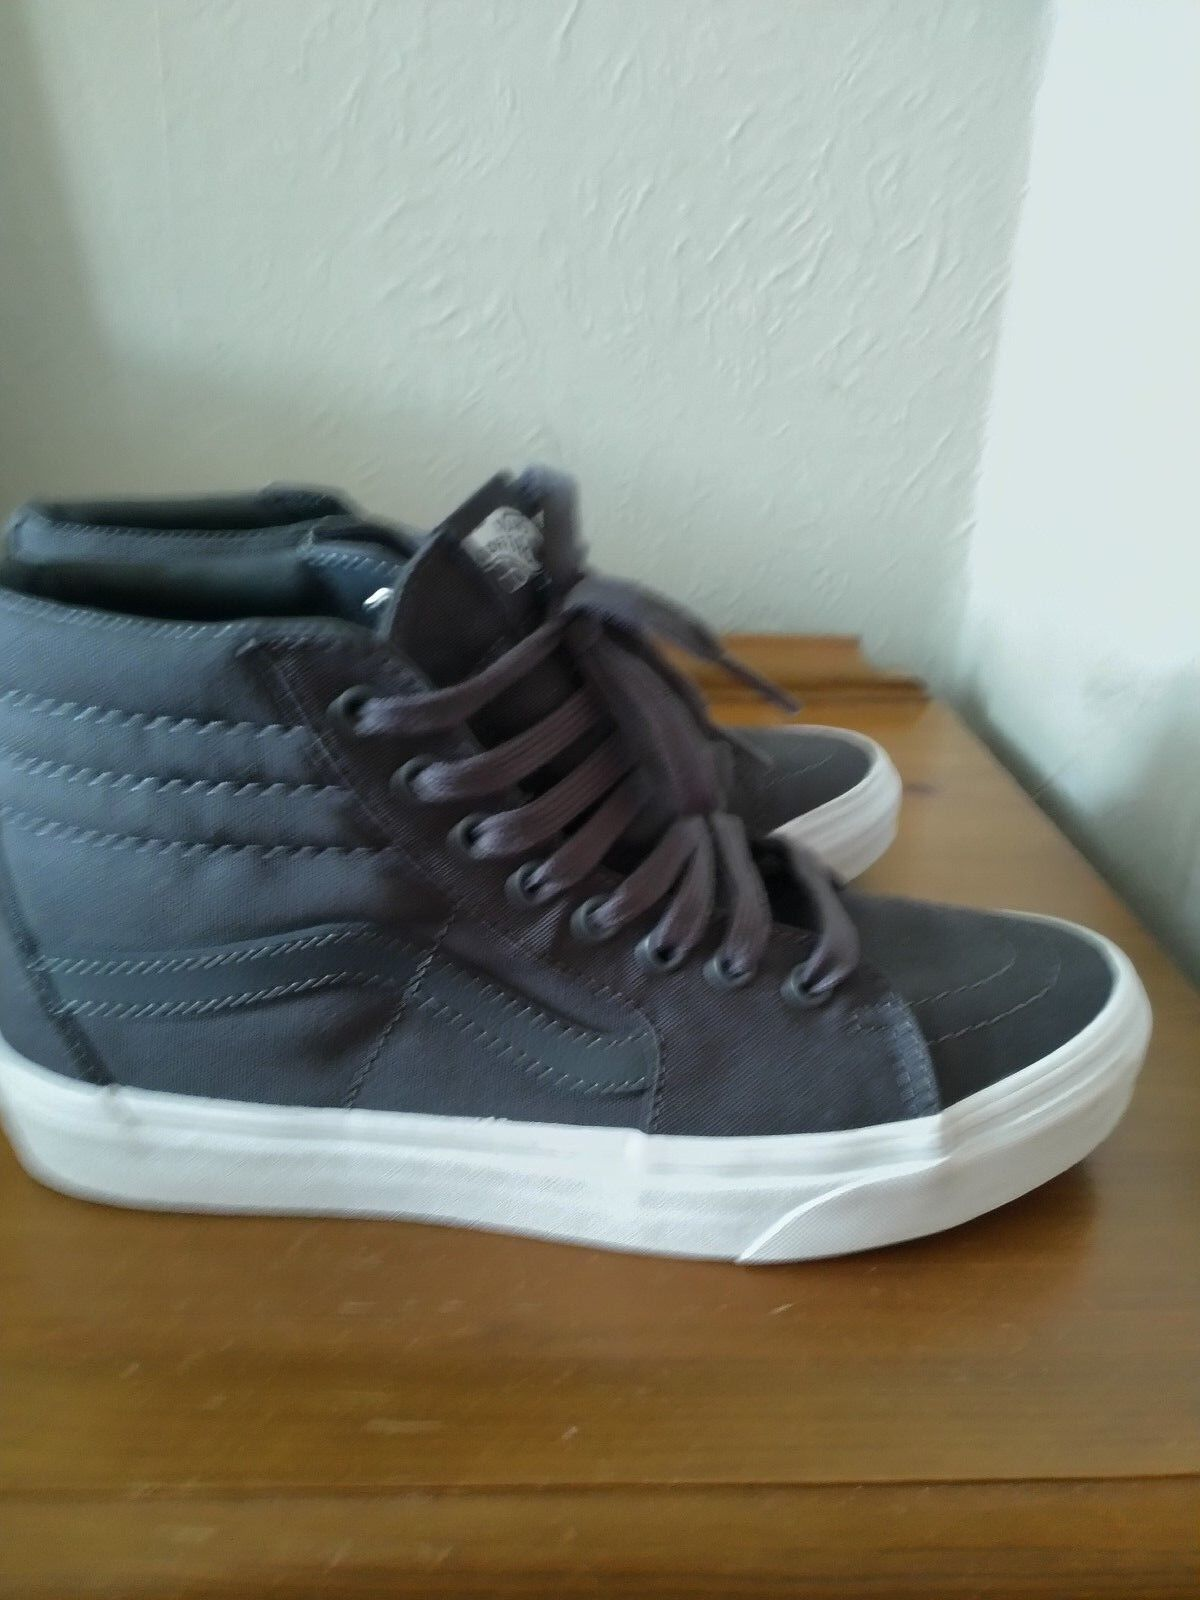 MEN'S VANS OF SIZE THE WALL SKATEBOARD SHOE SIZE OF 6 EUR 39 Worn Once Only Used 23ec5f